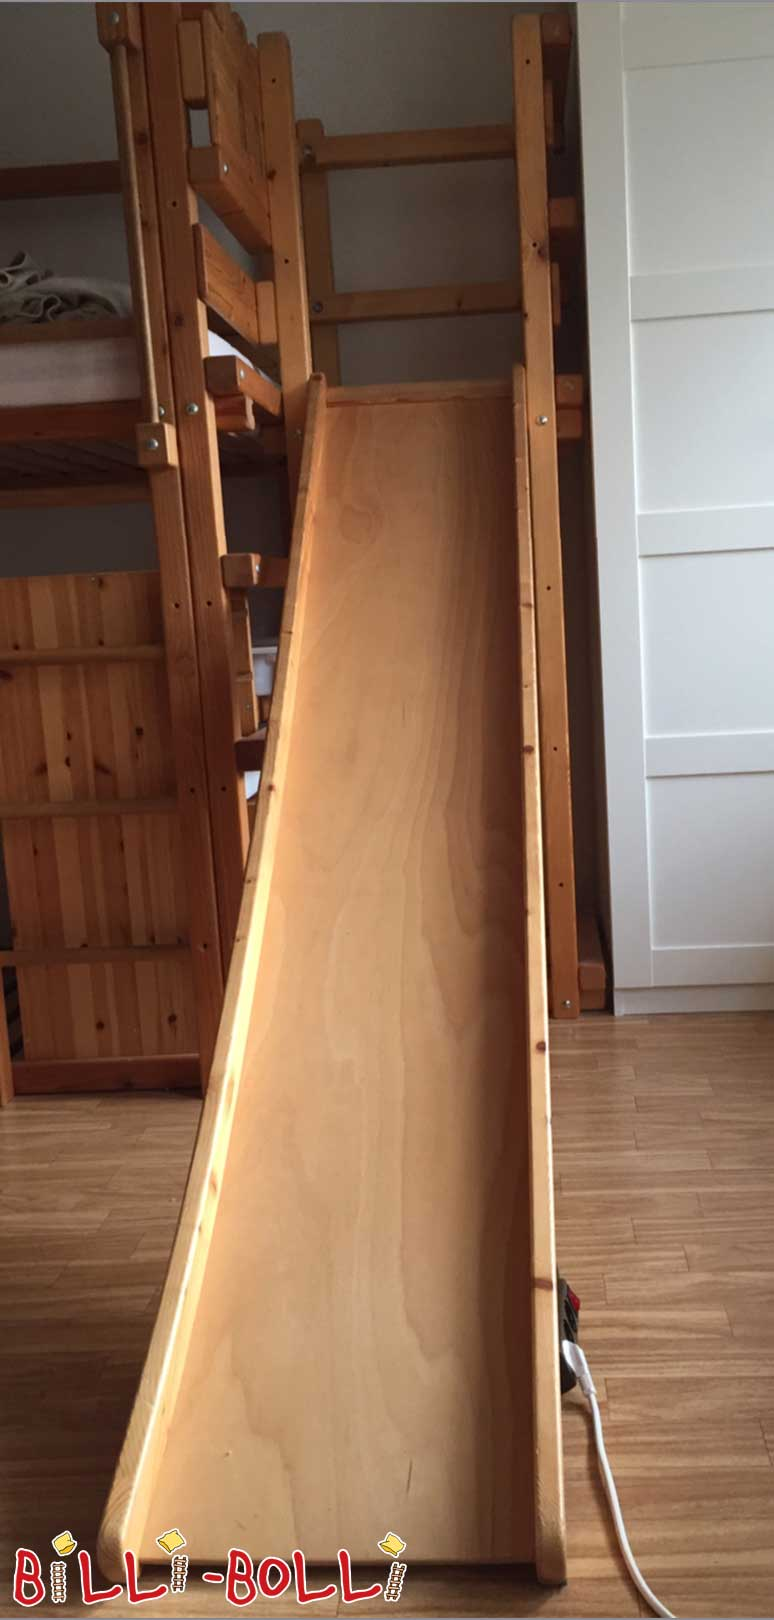 Slide tower with slide height 4 & 5, spruce oiled-waxed (slide for loft bed)